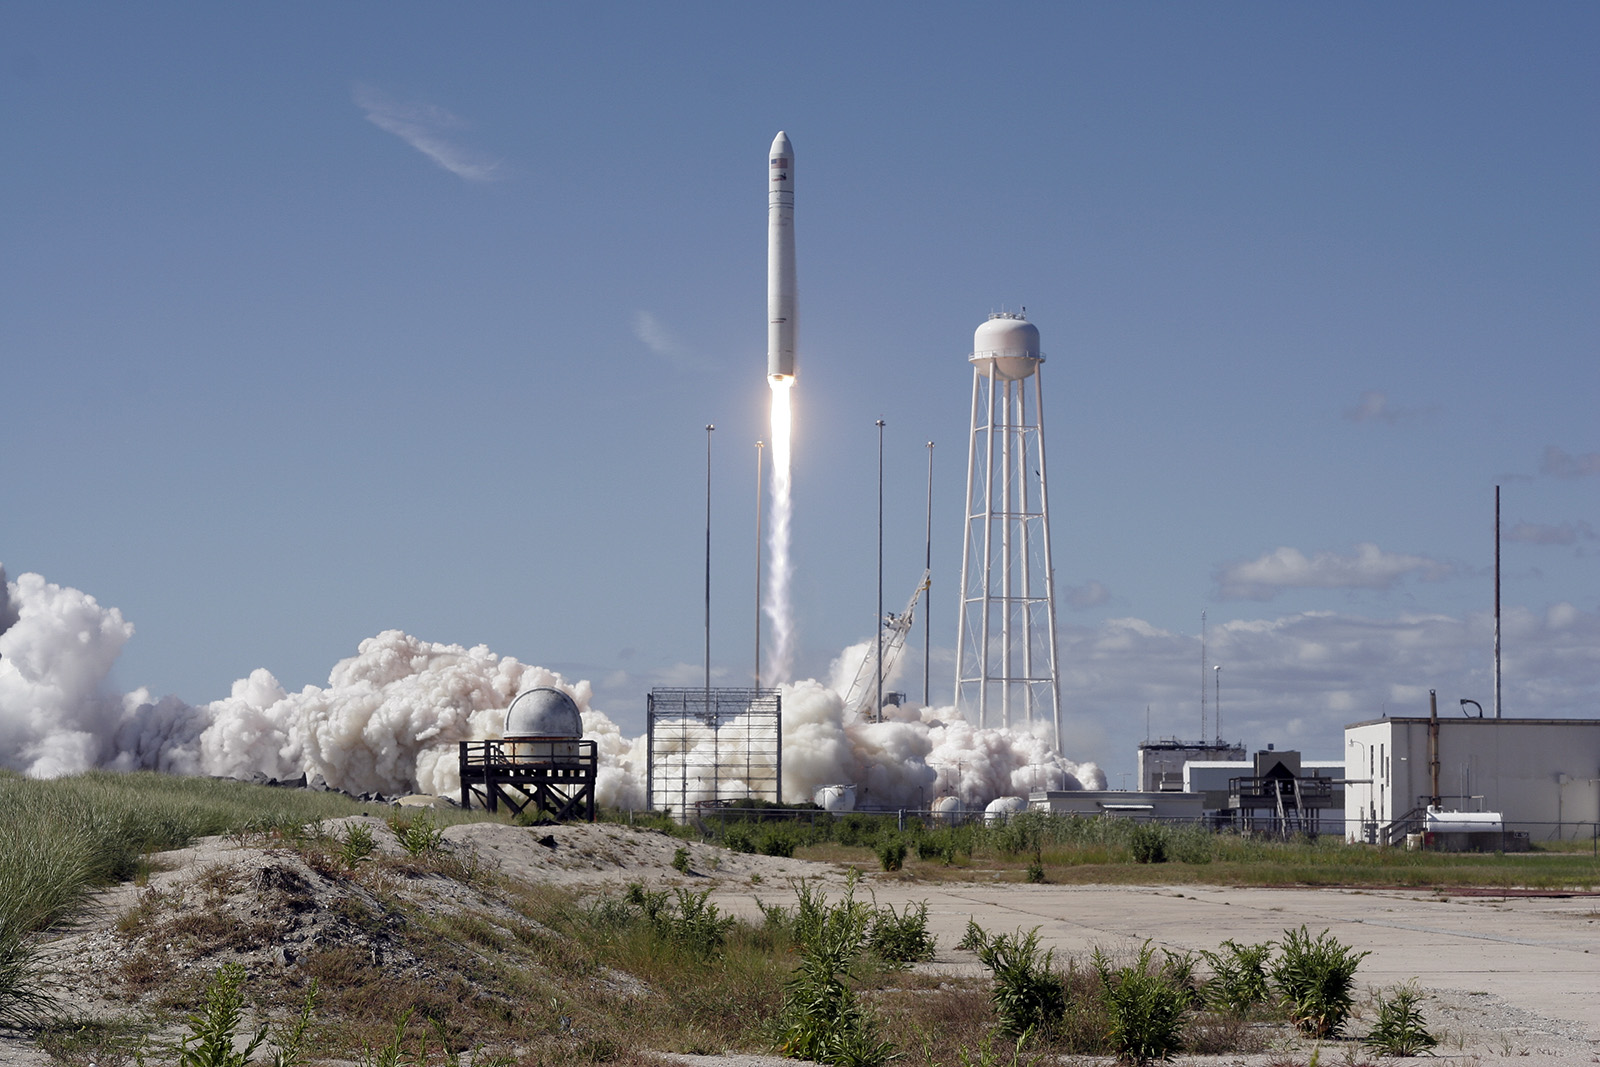 Antares blasts off on its inaugural mission from Wallops Island earlier this year. Credit: Orbital Sciences